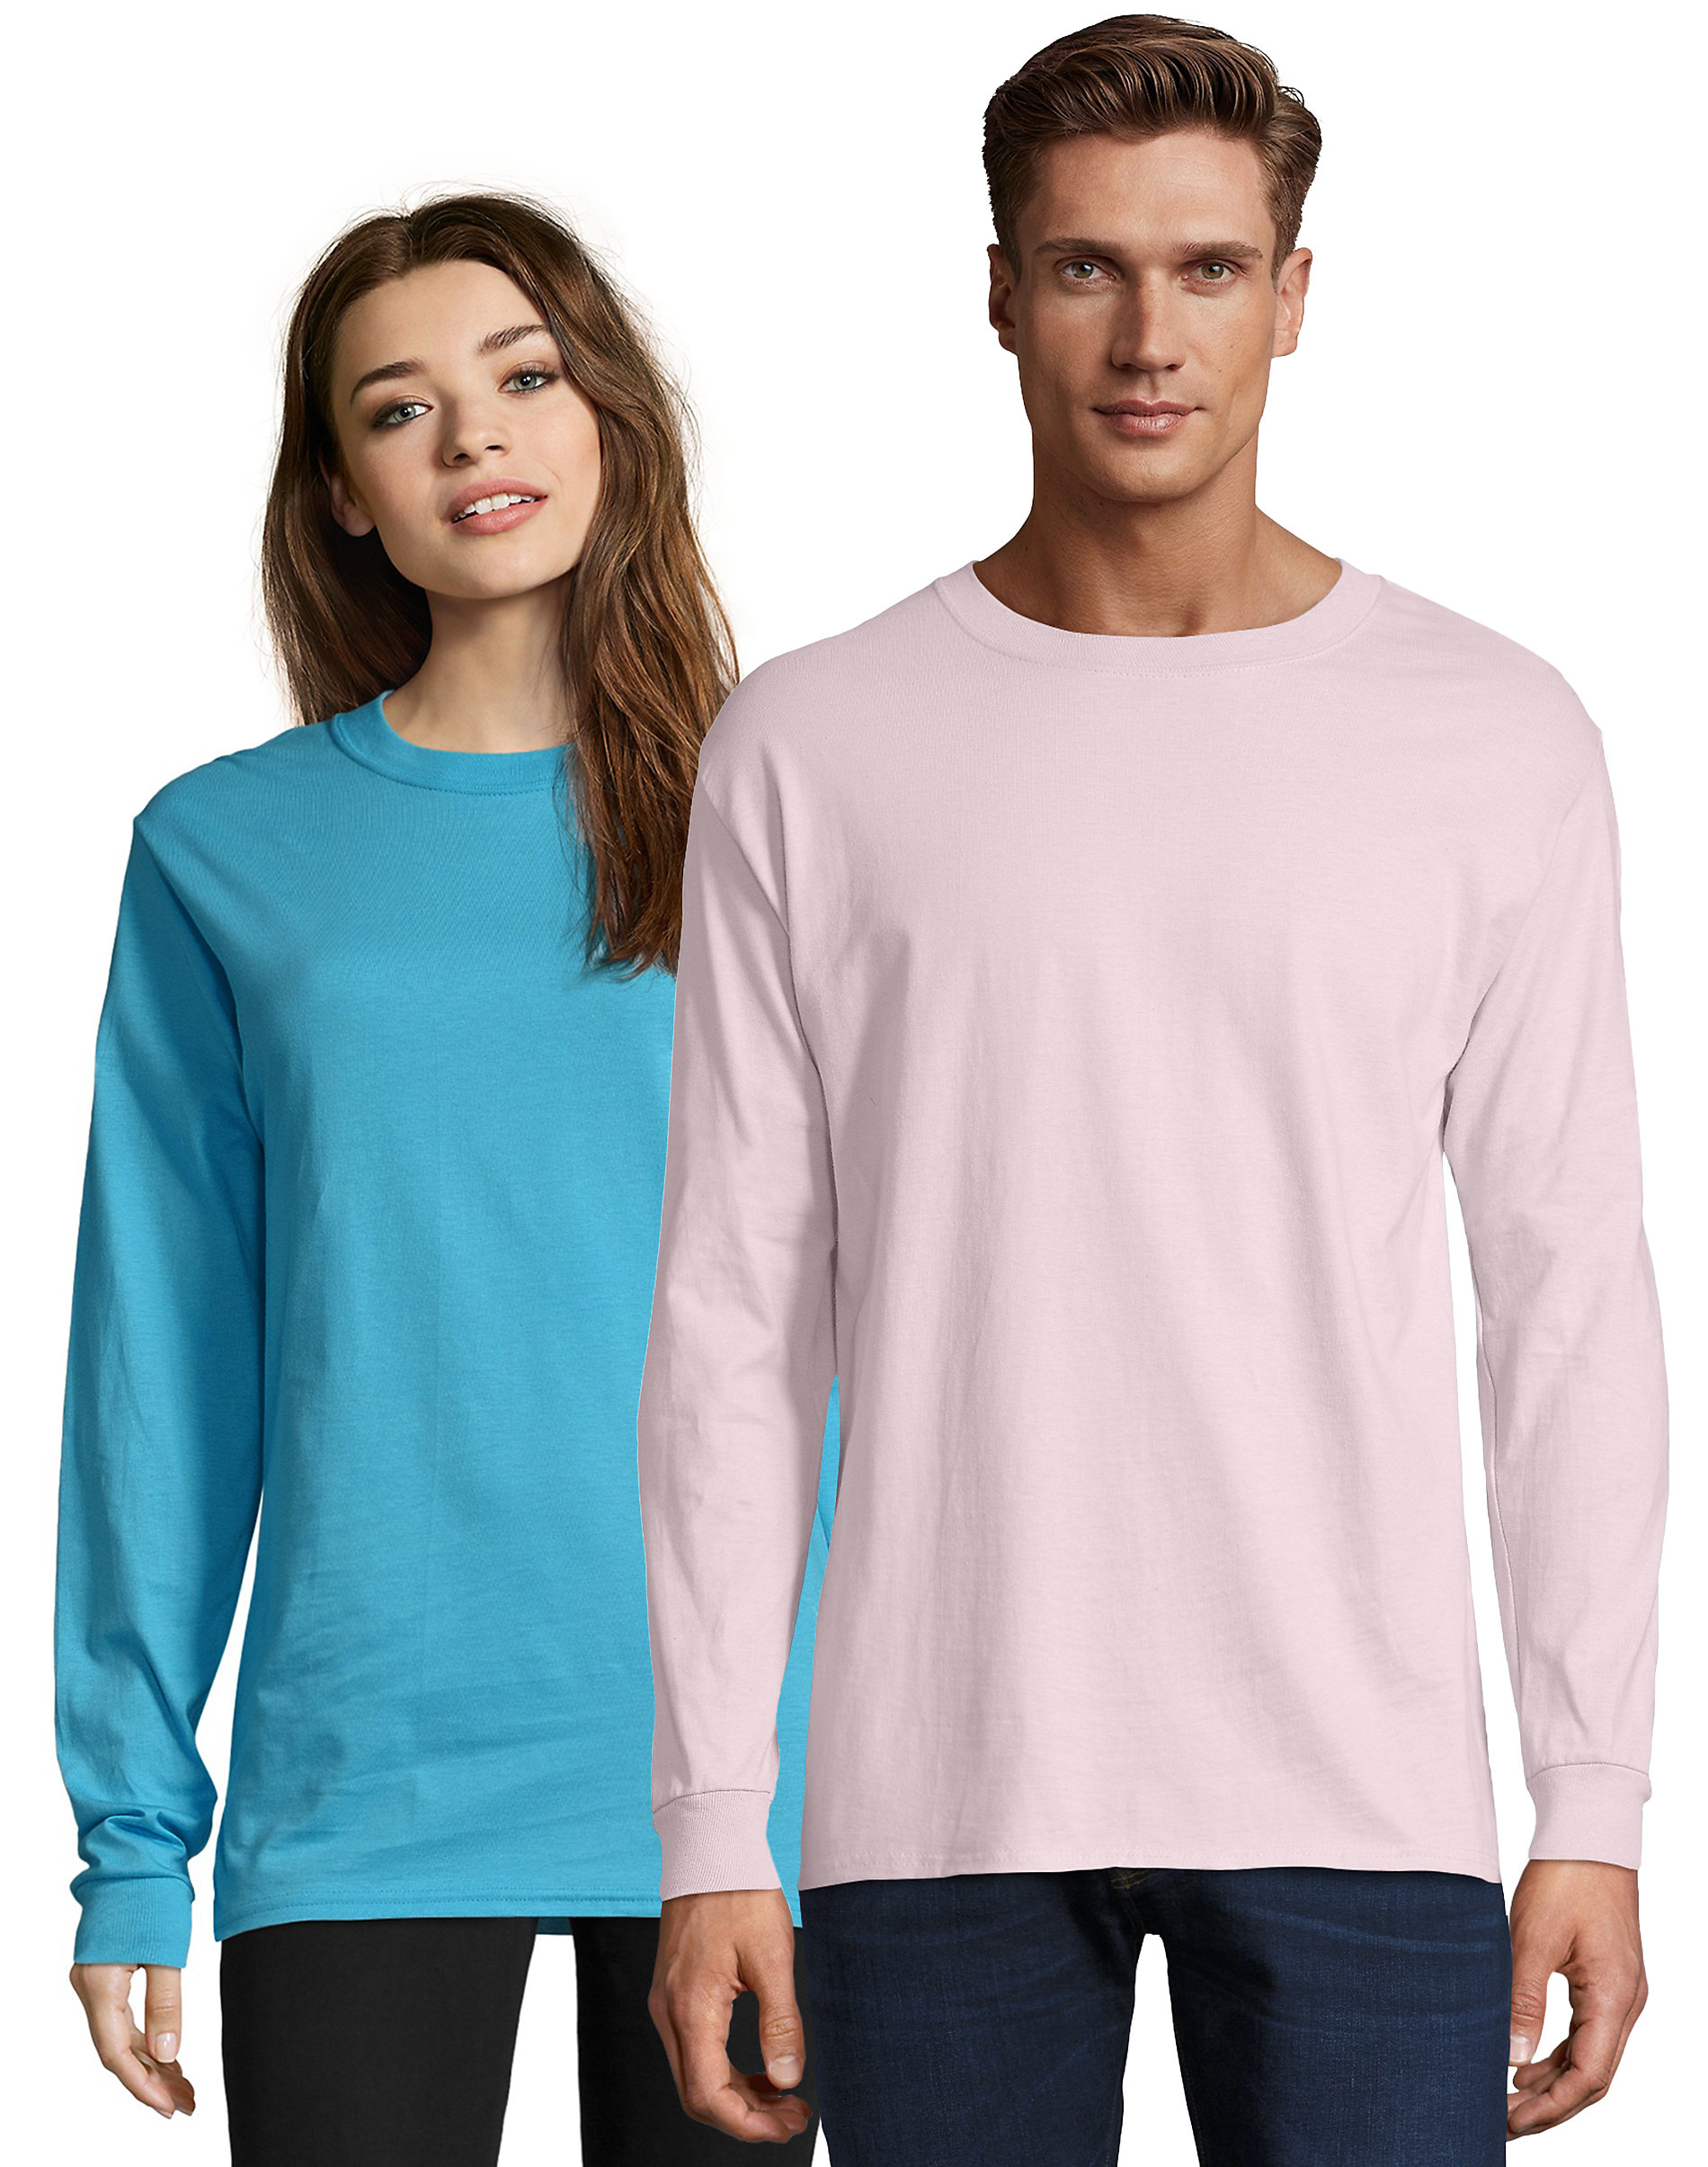 Hanes-Long-Sleeve-T-Shirt-100-Cotton-Adult-Beefy-Tee-Thicky-Heavy-S-3XL-5186